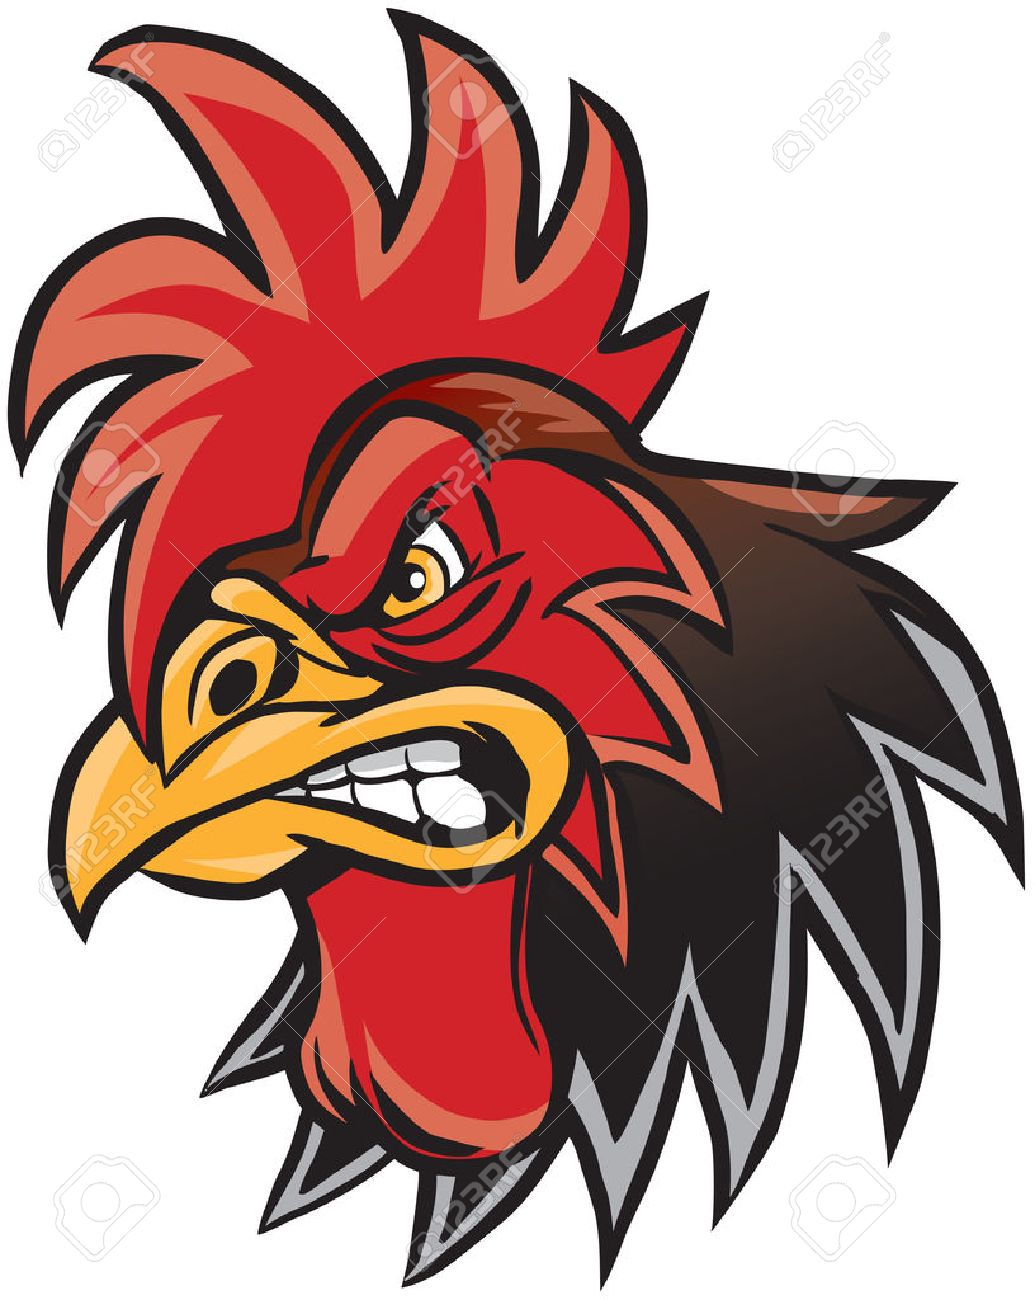 Vector cartoon clip art illustration of a rooster or gamecock...